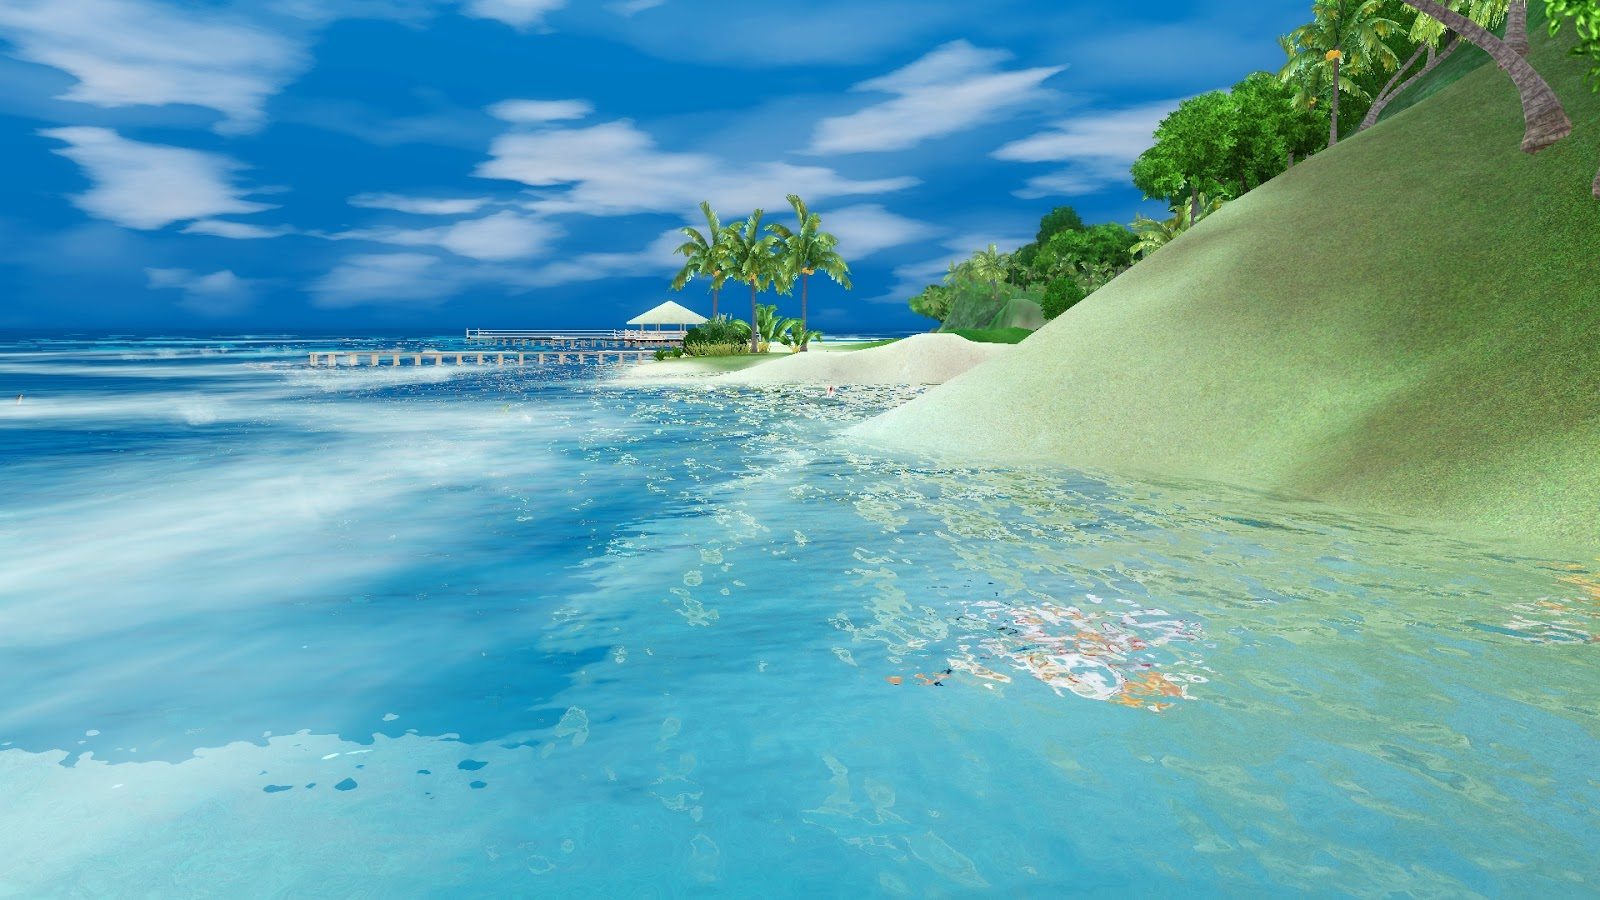 Cink S Sims Lucid Cove Is Now Available